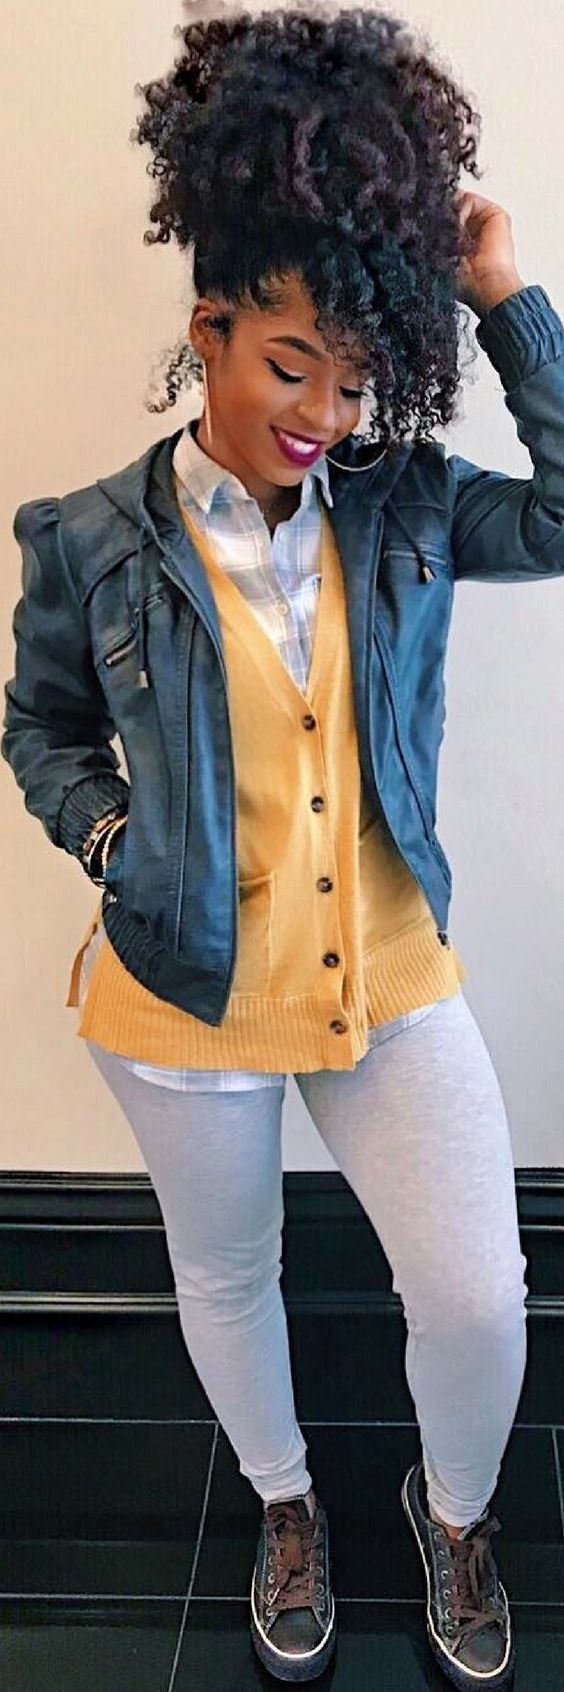 25 Of The Best Winter Fashion Ideas Youll Love https://ecstasymodels.blog/2018/01/21/25-winter-fashion-ideas/?utm_campaign=coschedule&utm_source=pinterest&utm_medium=Ecstasy%20Models%20-%20Womens%20Fashion%20and%20Streetstyle&utm_content=25%20Of%20The%20Best%20Winter%20Fashion%20Ideas%20Youll%20Love